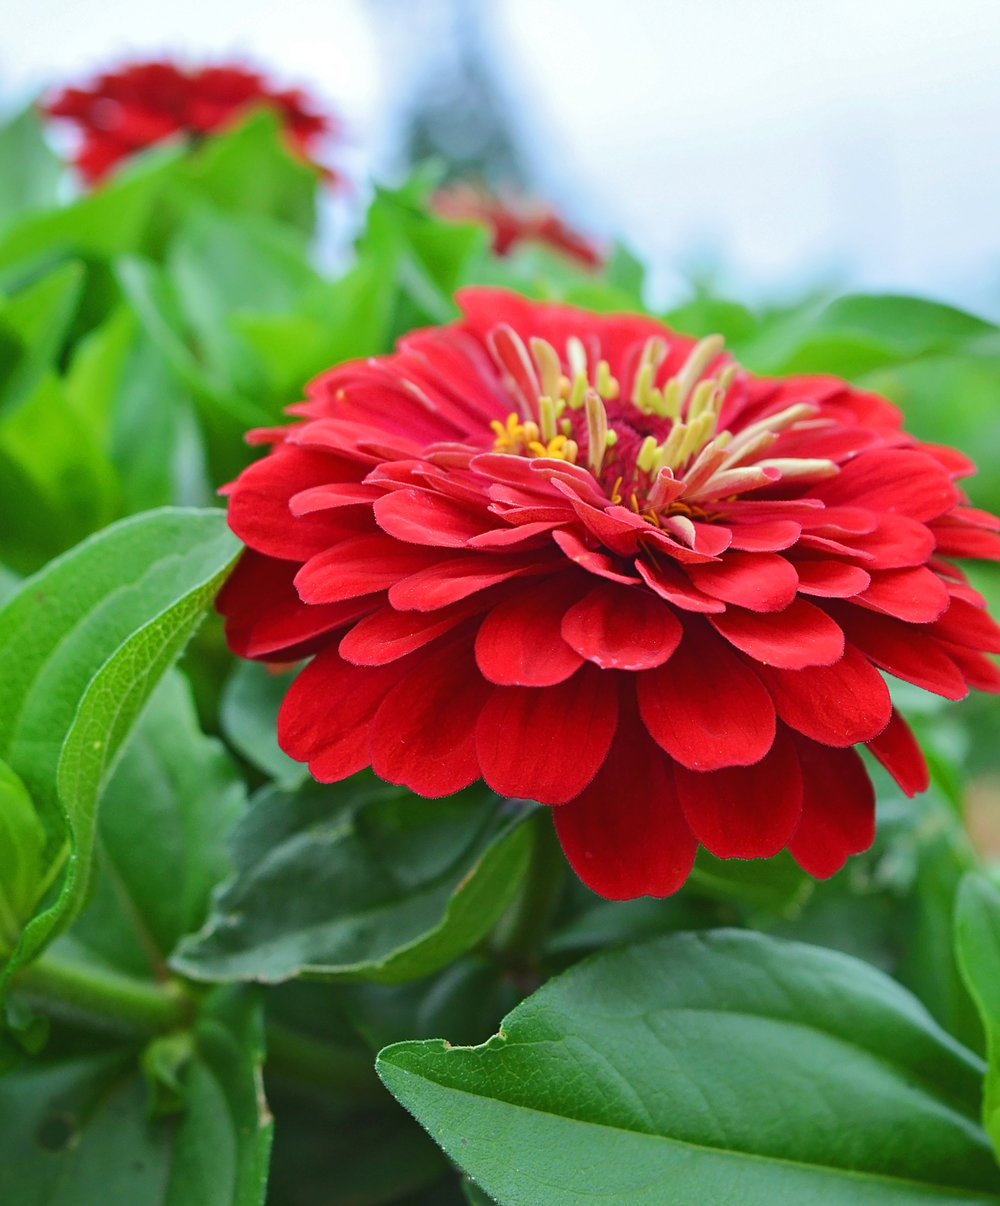 zinnia-flower-trials2-07-25-16.jpg